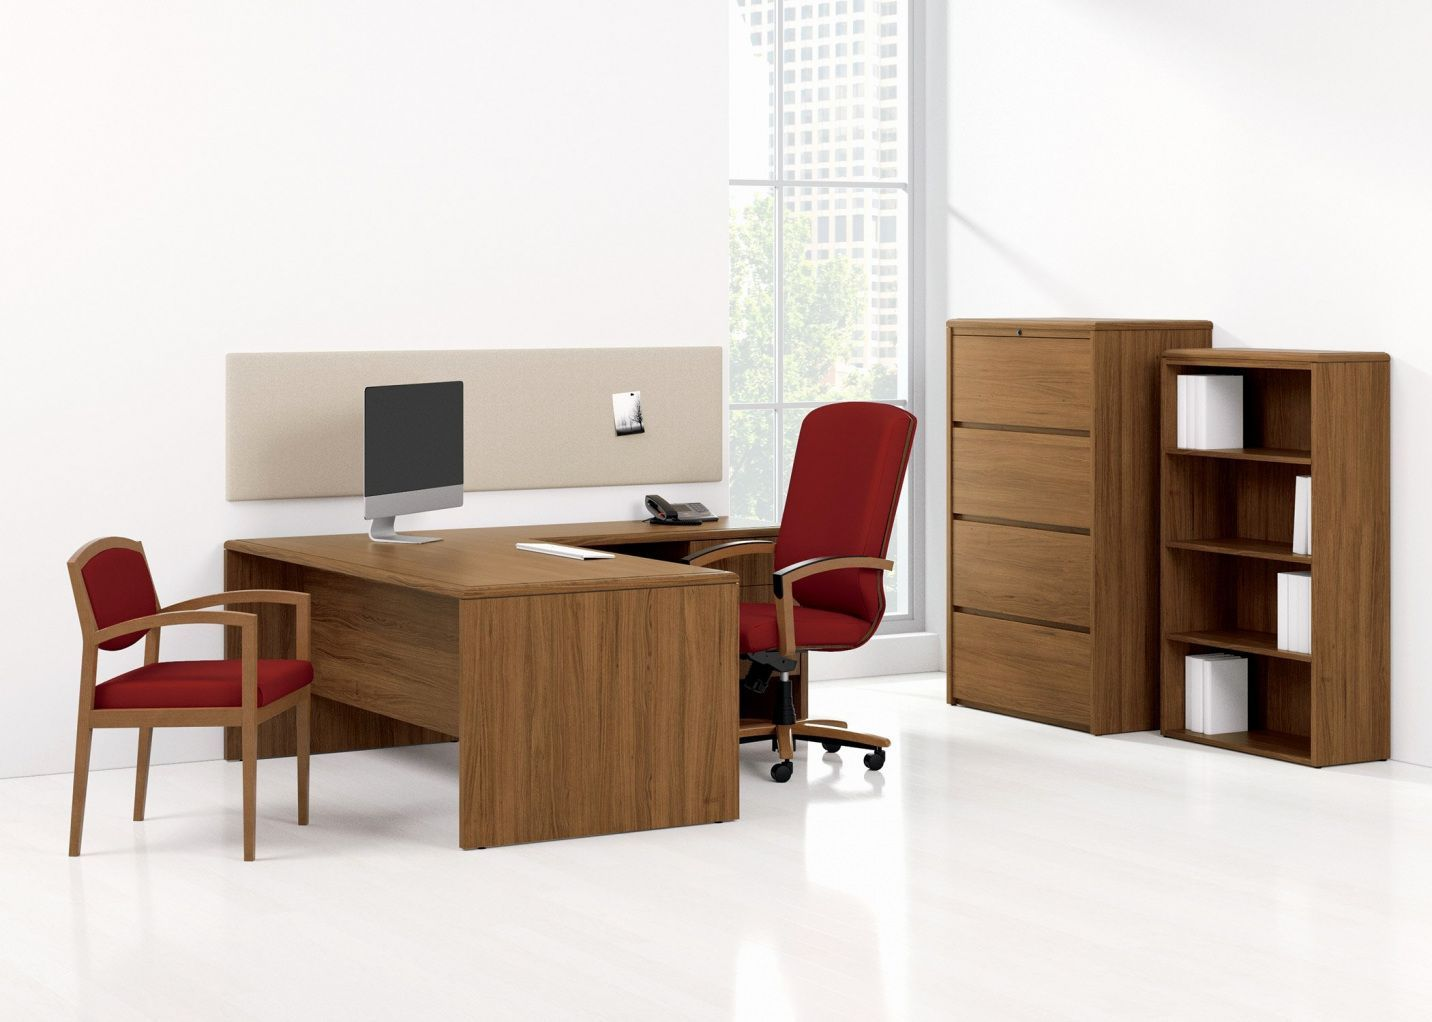 20 Used Office Furniture Little Rock Country Home Office Furniture Check More At Http Adidas Rustic Home Offices Used Office Furniture Furniture